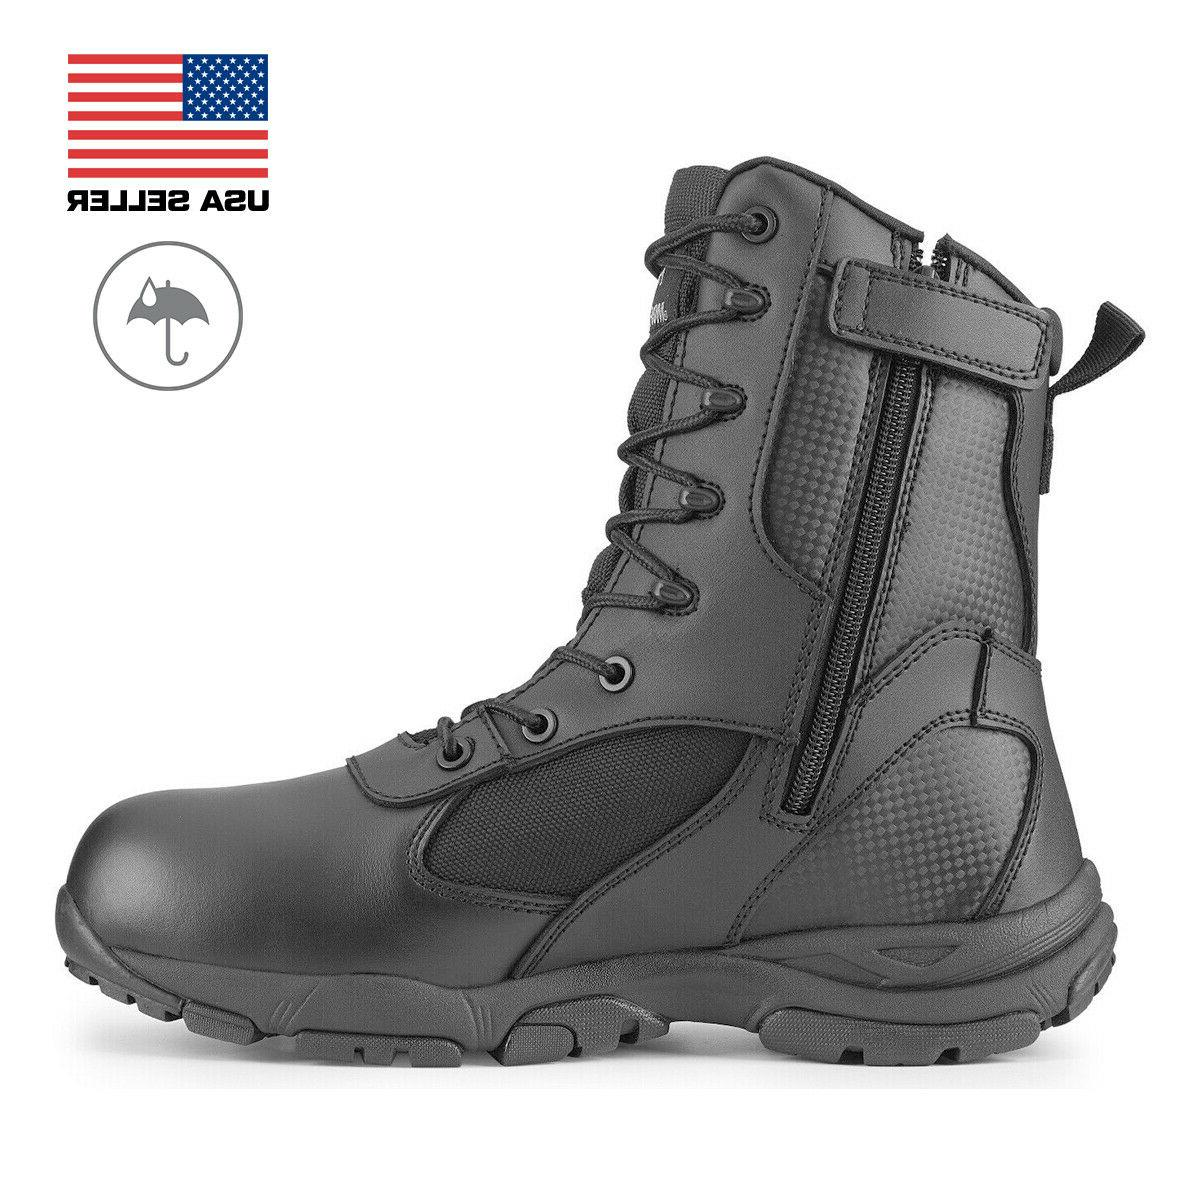 Maelstrom® TAC ATHLON Men's 8'' Black Waterproof Boots With